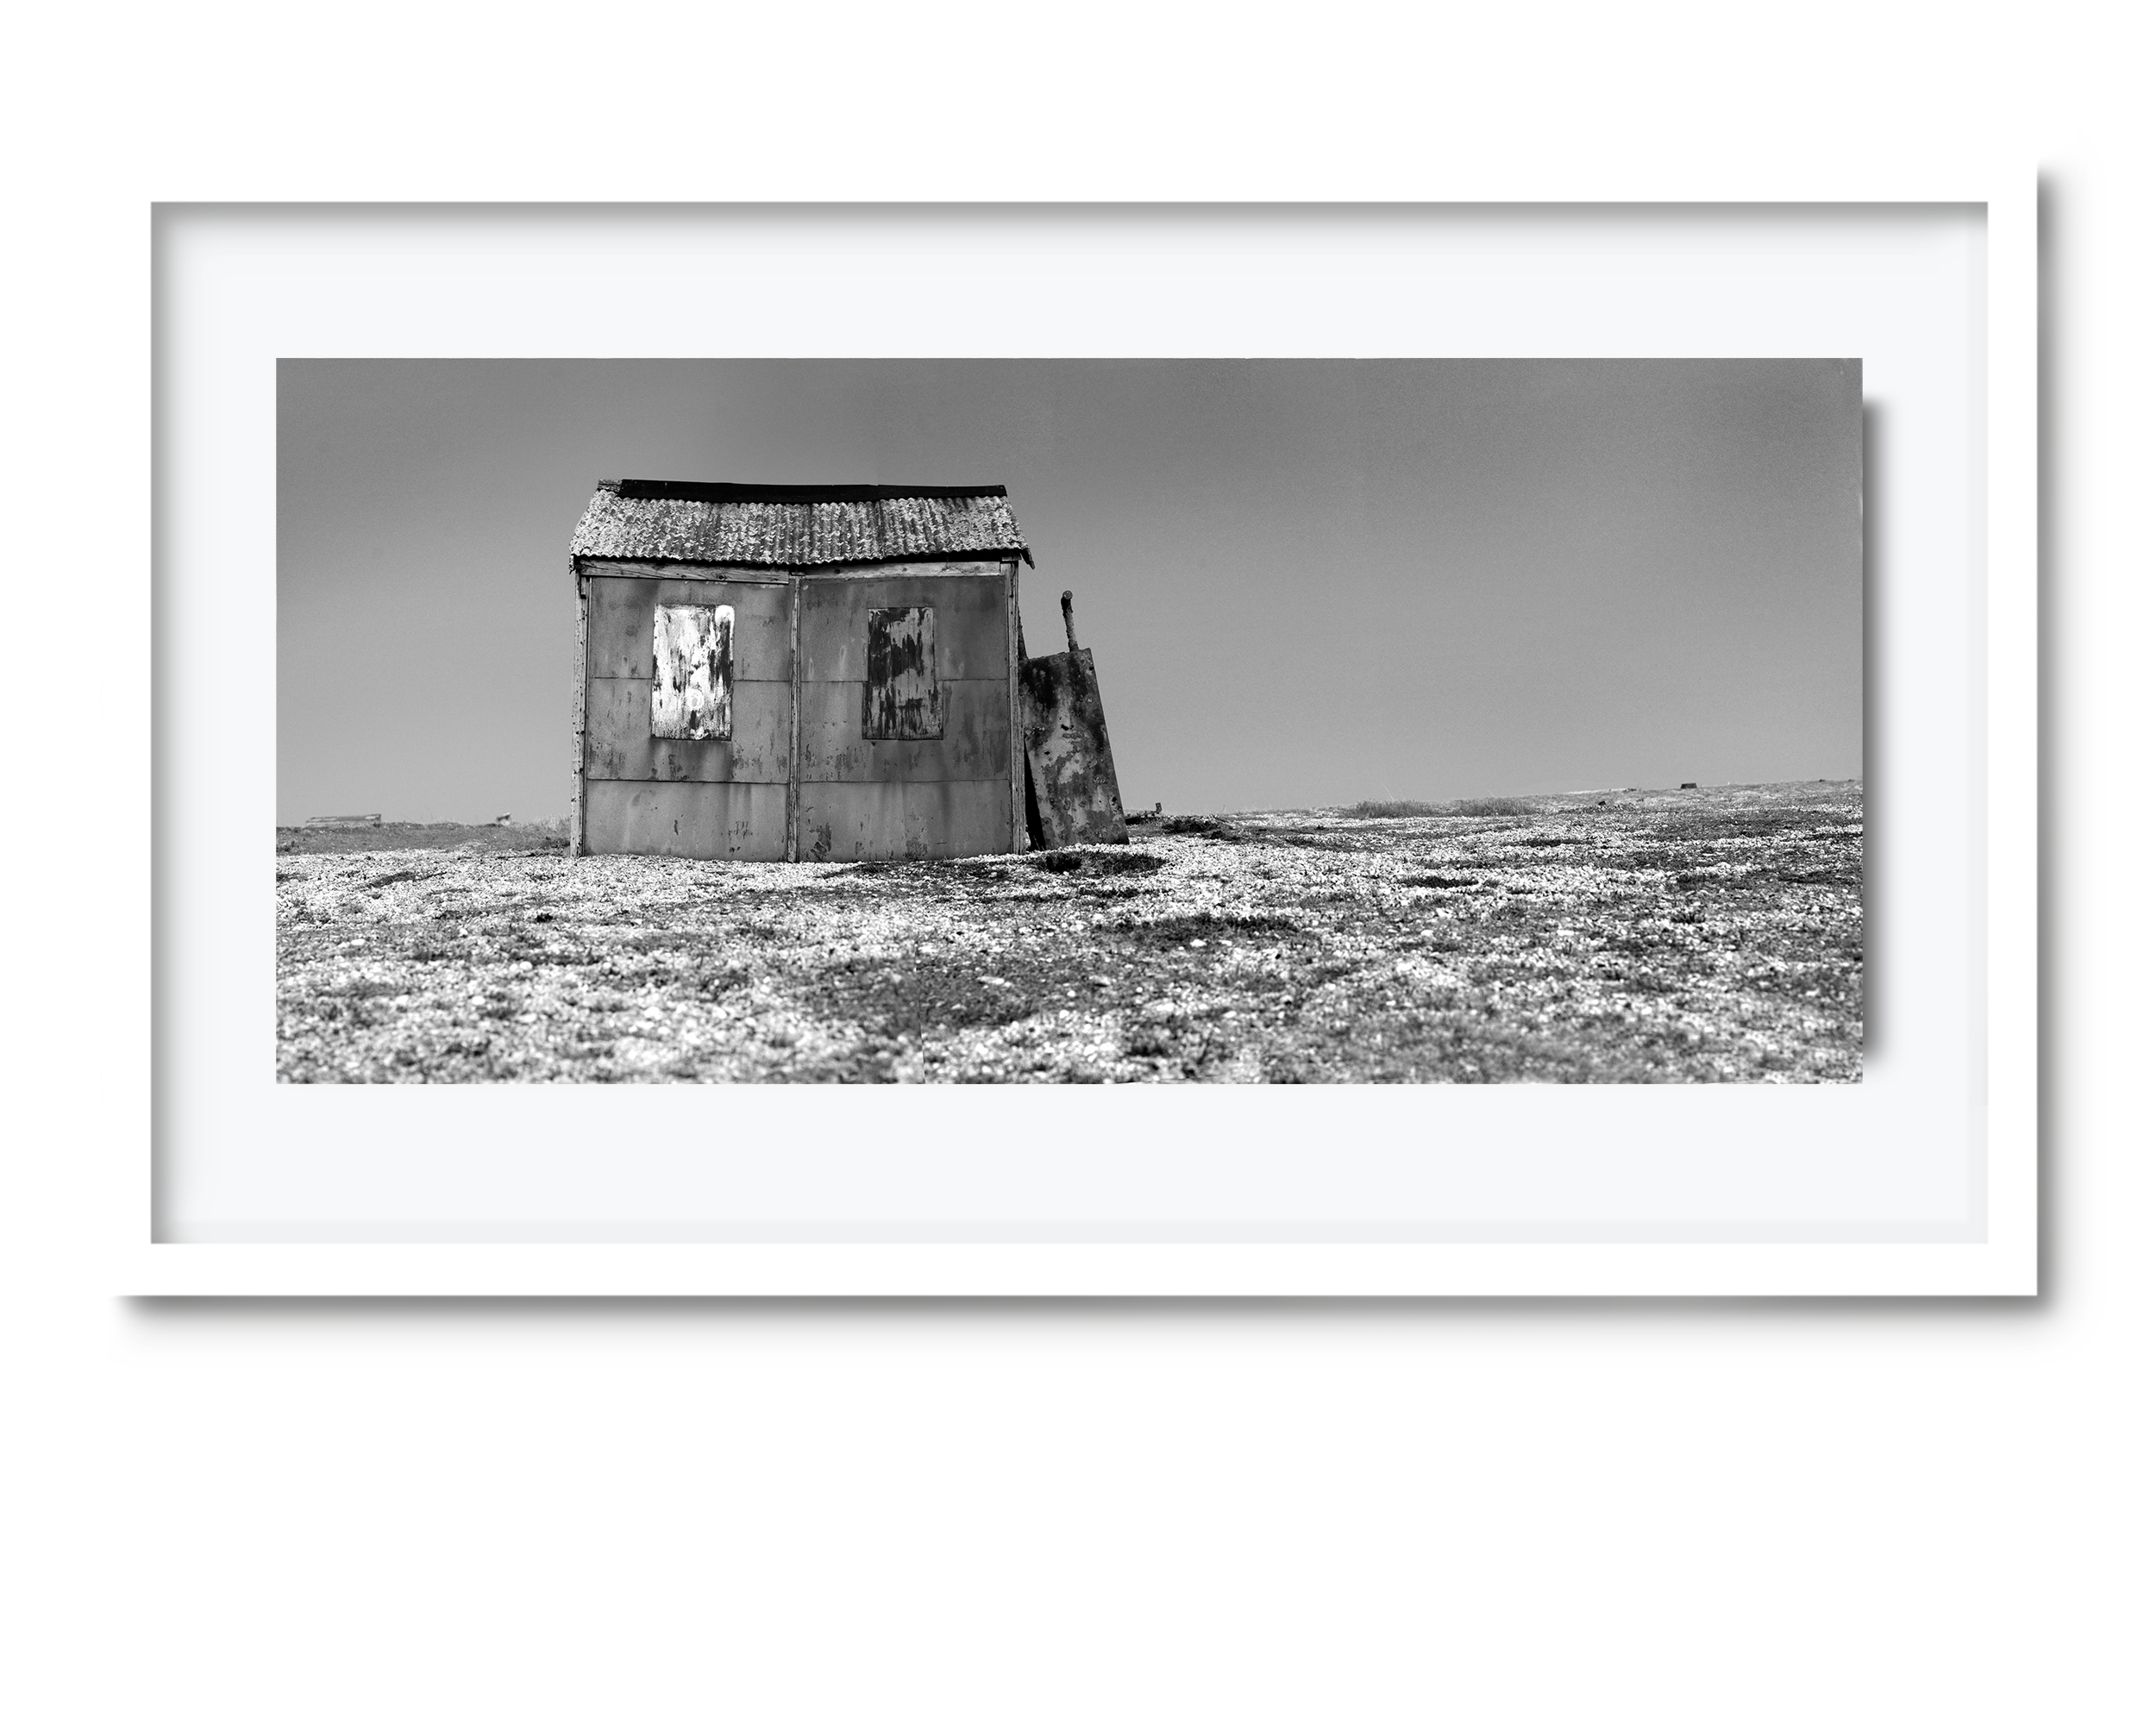 31.david-pearce-dungeness.png